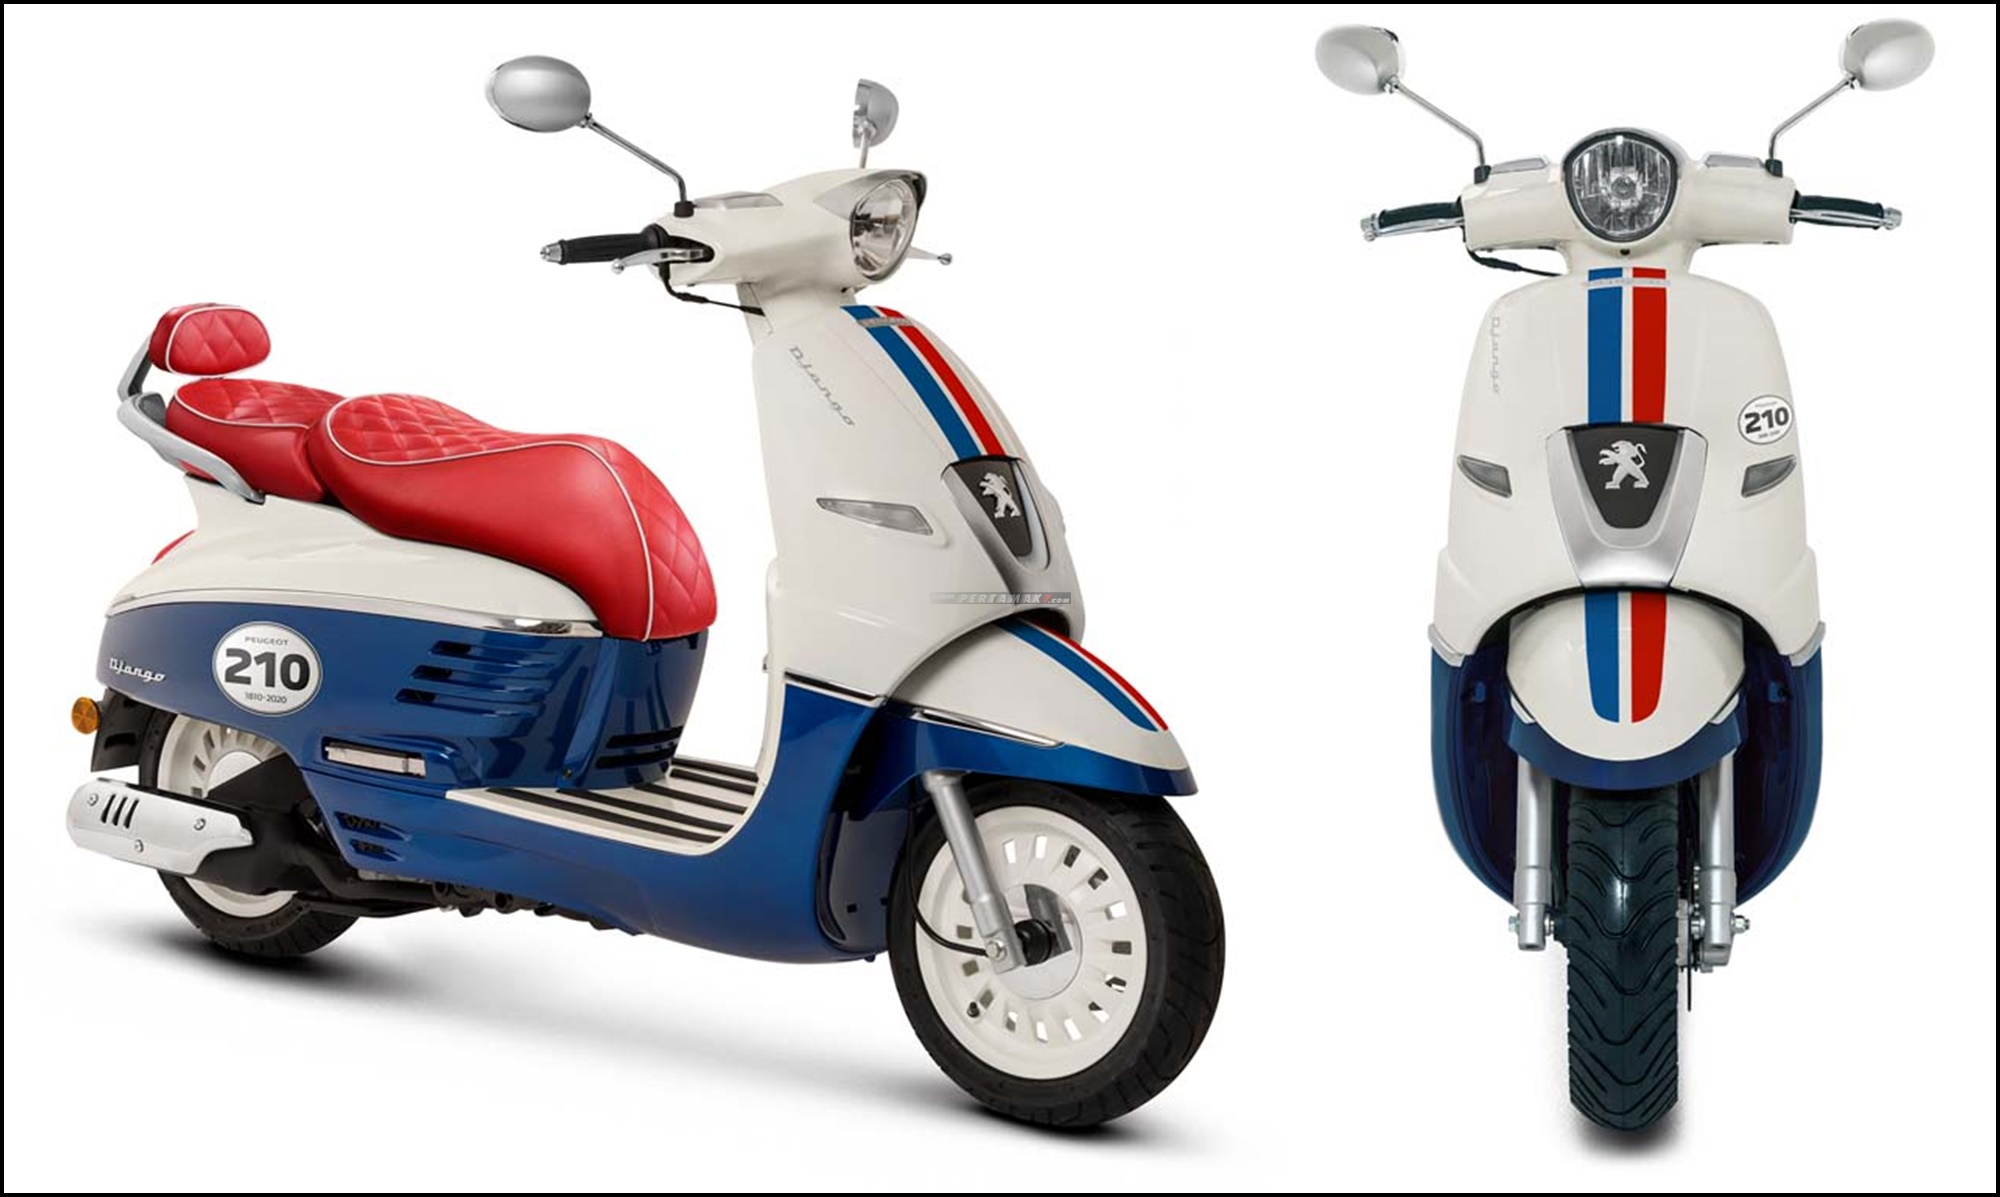 Peugeot Django 125 ABS 210th Anniversary Limited Edition